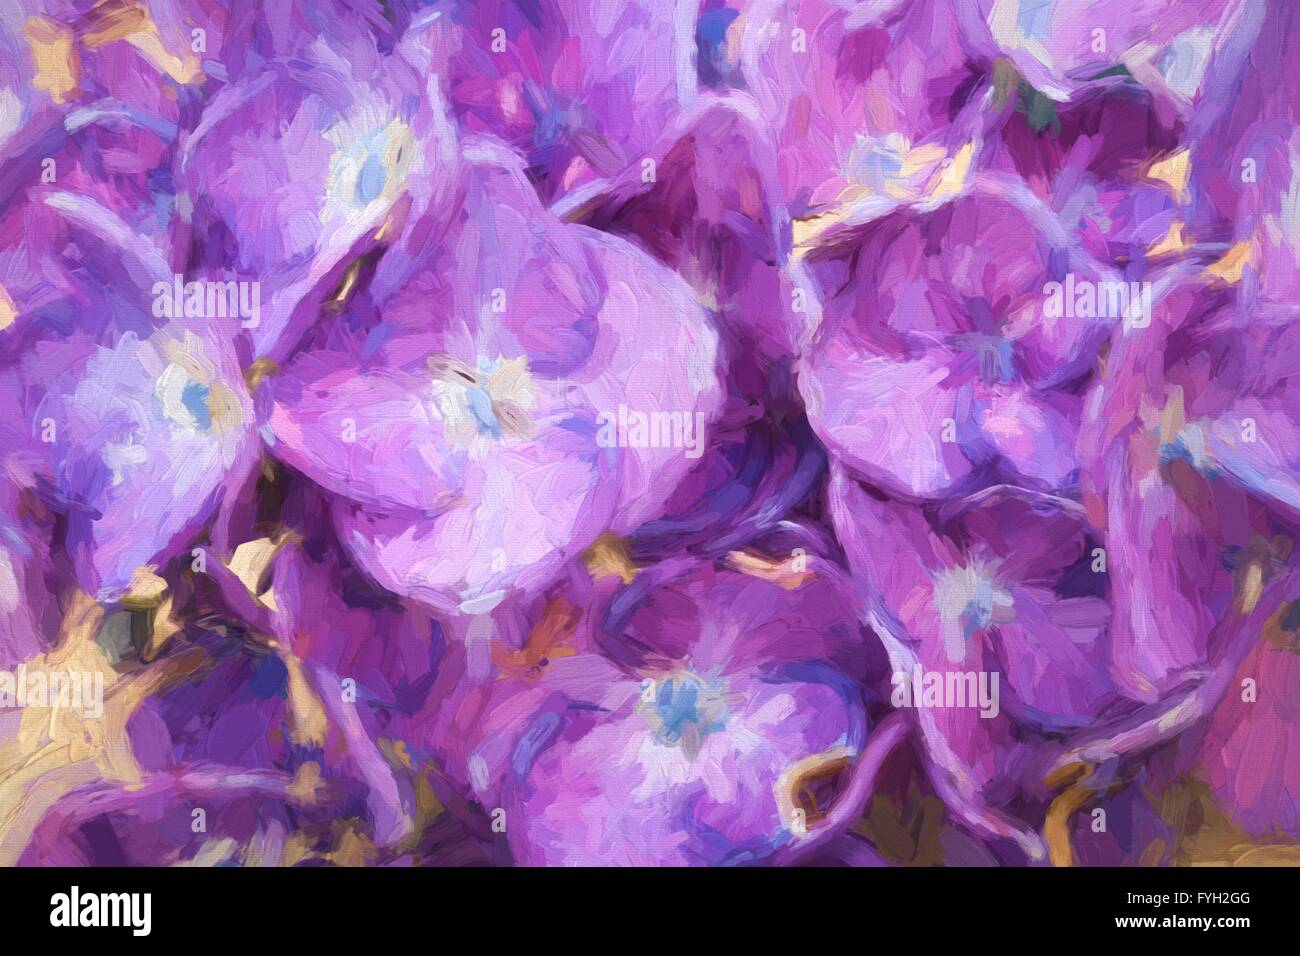 Pictures Of Flowers To Paint On Canvas